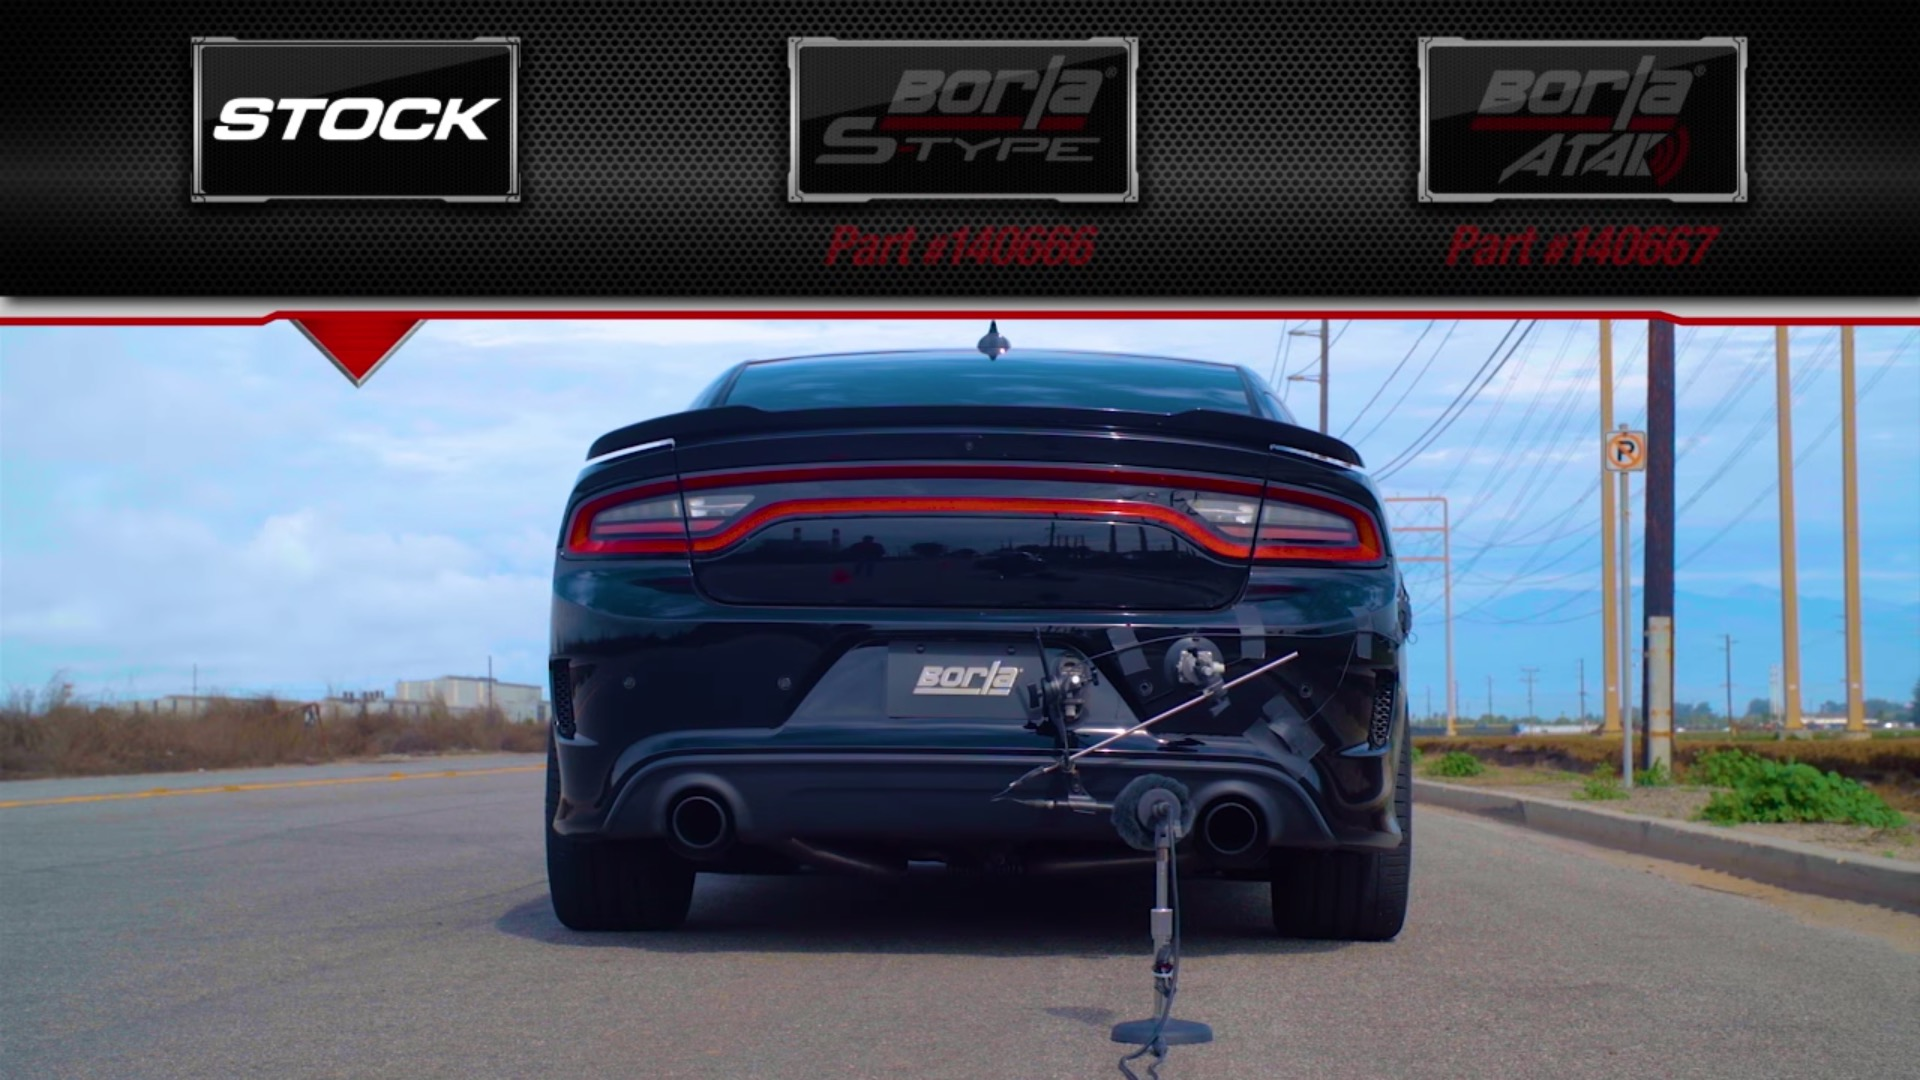 Borla Spruces Up The Charger Srt Hellcat With Loud Exhaust Systems Autoevolution